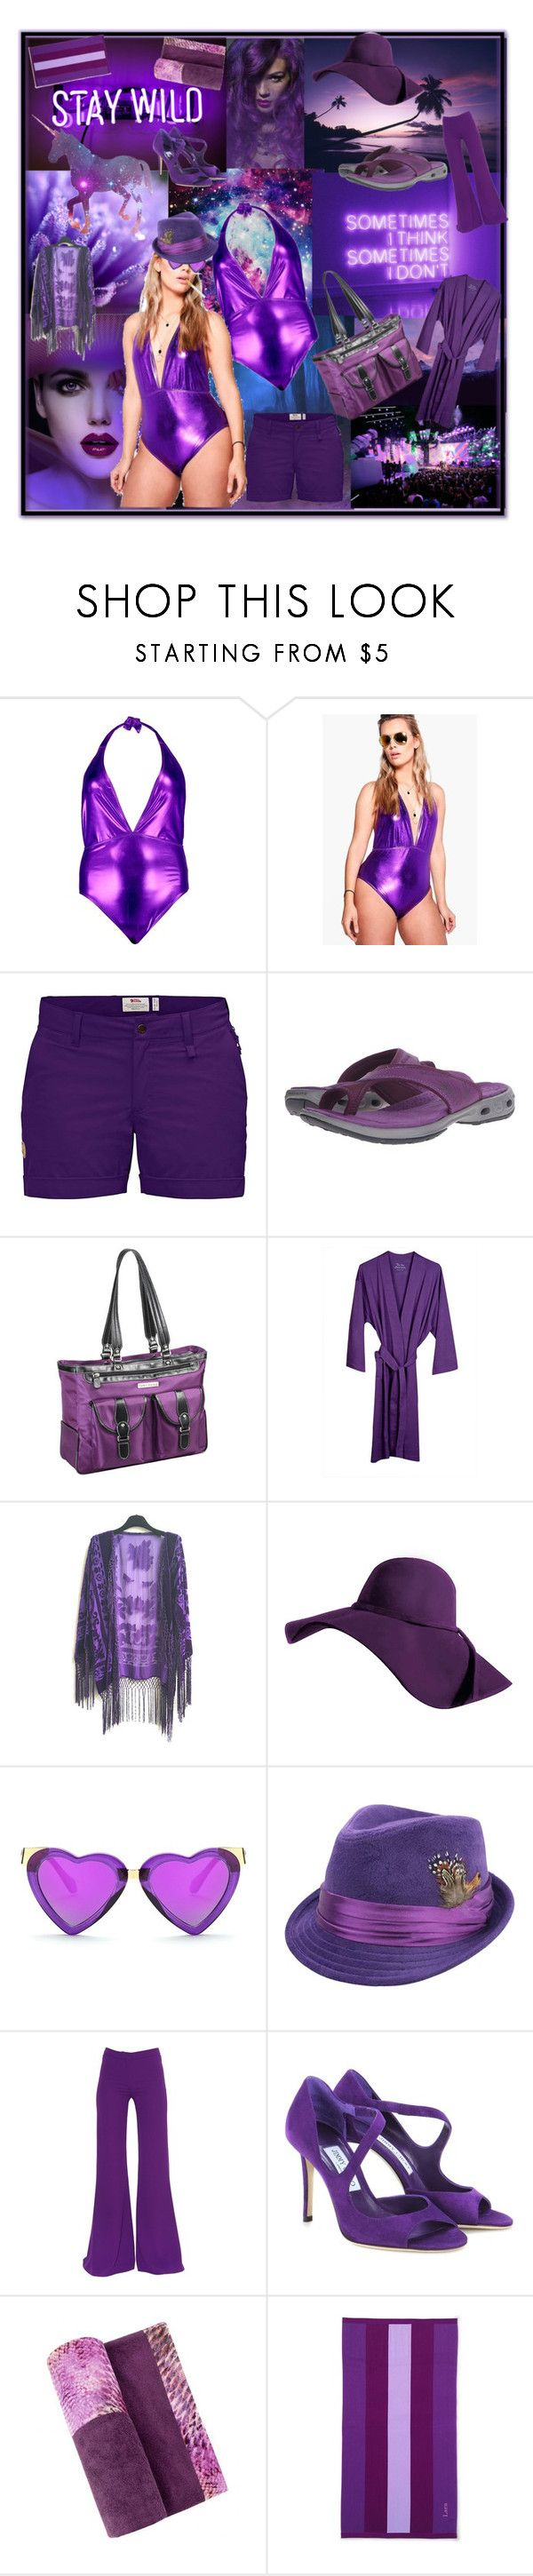 """purple metallic suit and monochrome outfit for late & later"" by caroline-buster-brown ❤ liked on Polyvore featuring Boohoo, Justin Bieber, Fjällräven, Columbia, Clark & Mayfield, IGH, Gareth Pugh, Jimmy Choo, Sun of a Beach and Lands' End"